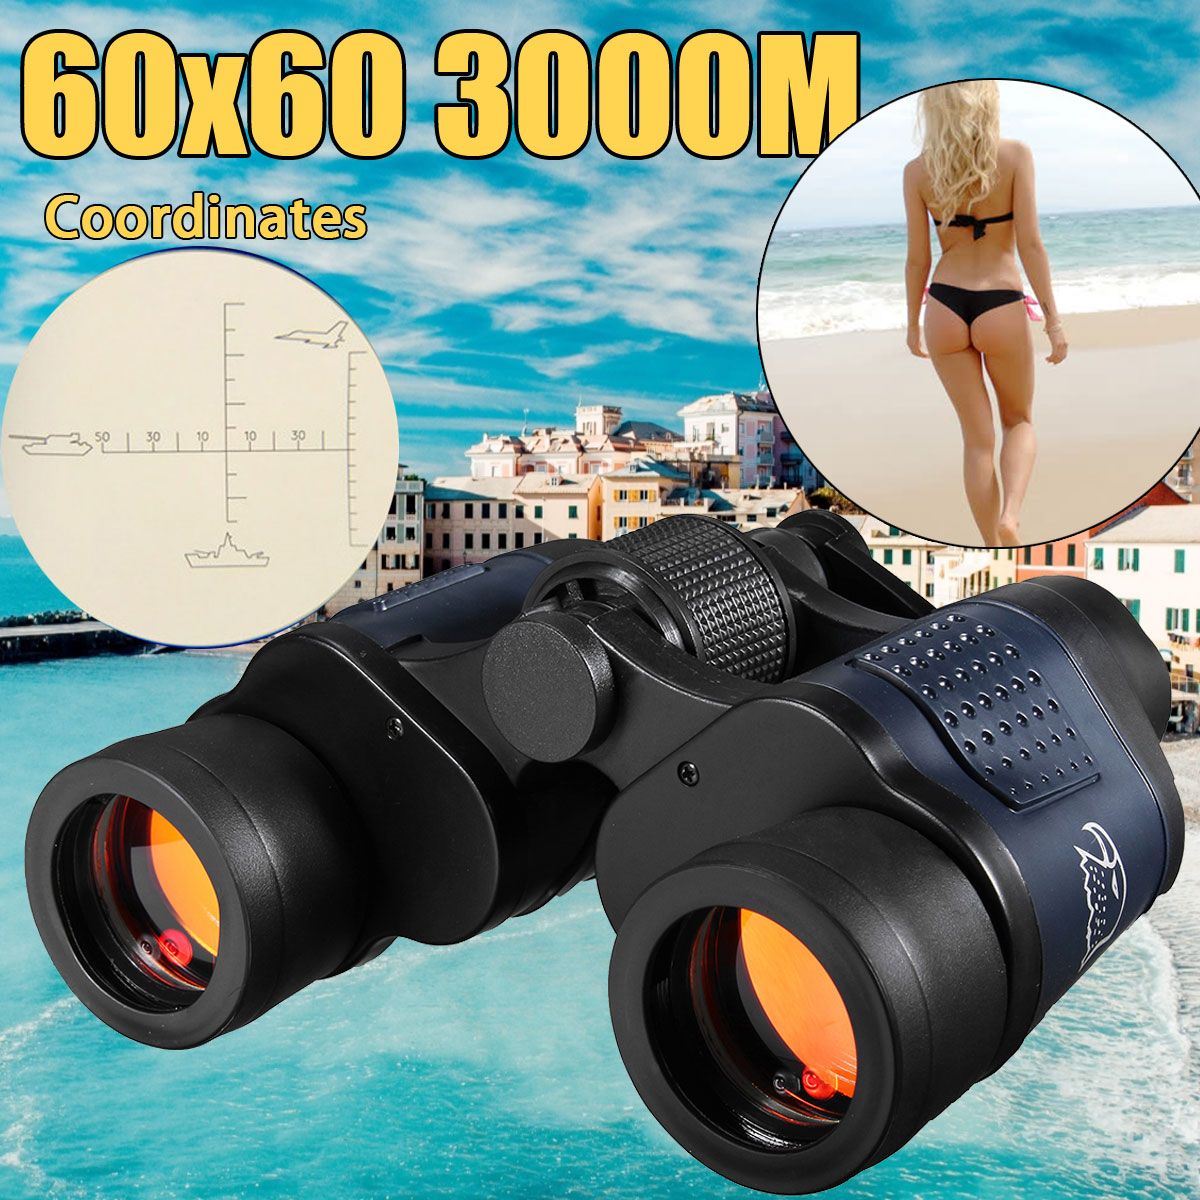 New 60X60 Optical Telescope Night Vision Binoculars High Clarity 3000M binocular Spotting scope outdoor Hunting sports eyepiece binocular telescope non infrared night vision binoculars camping hunting spotting scope telescopes support drop shipping